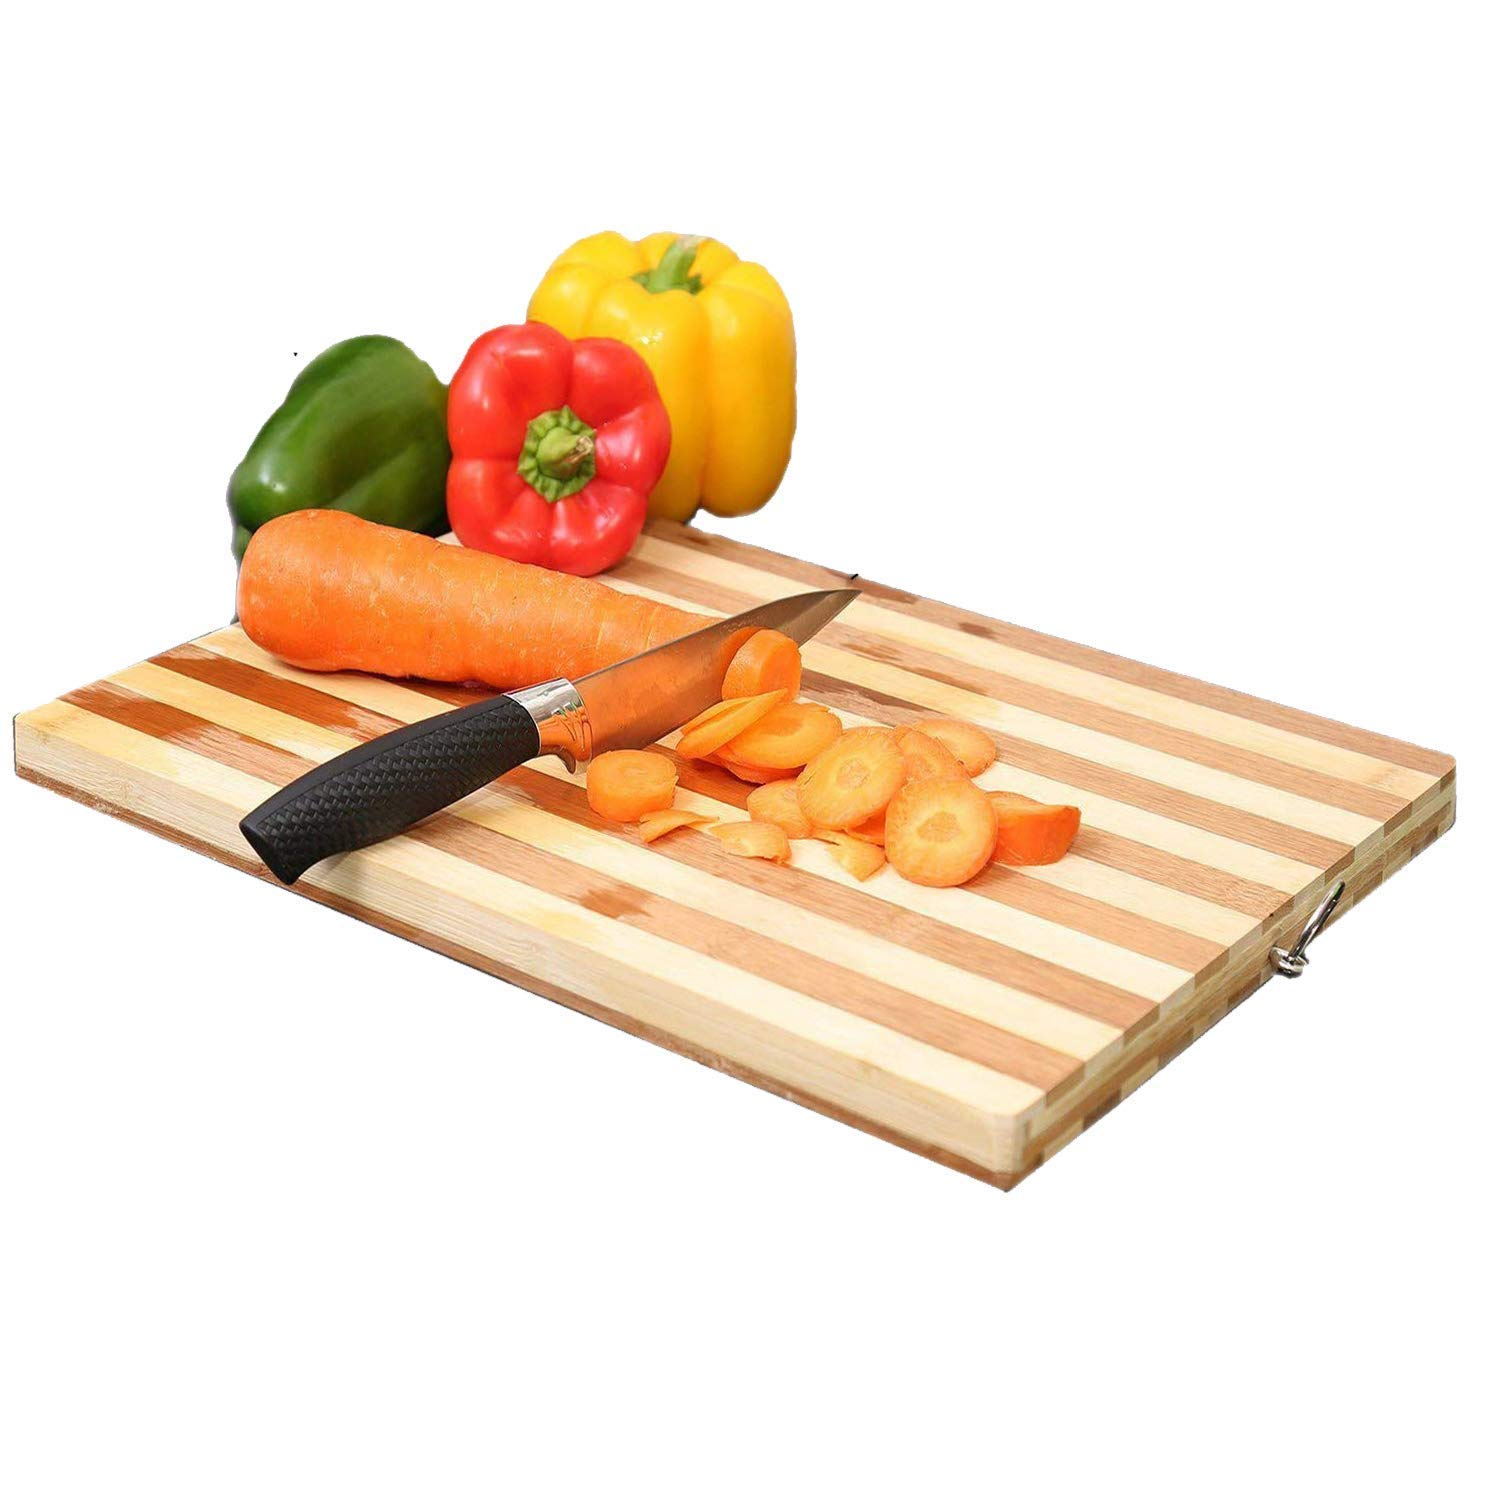 Gulwan Non-slip Wooden & Bamboo Cutting Board with Antibacterial Surface, Small(Yellow)